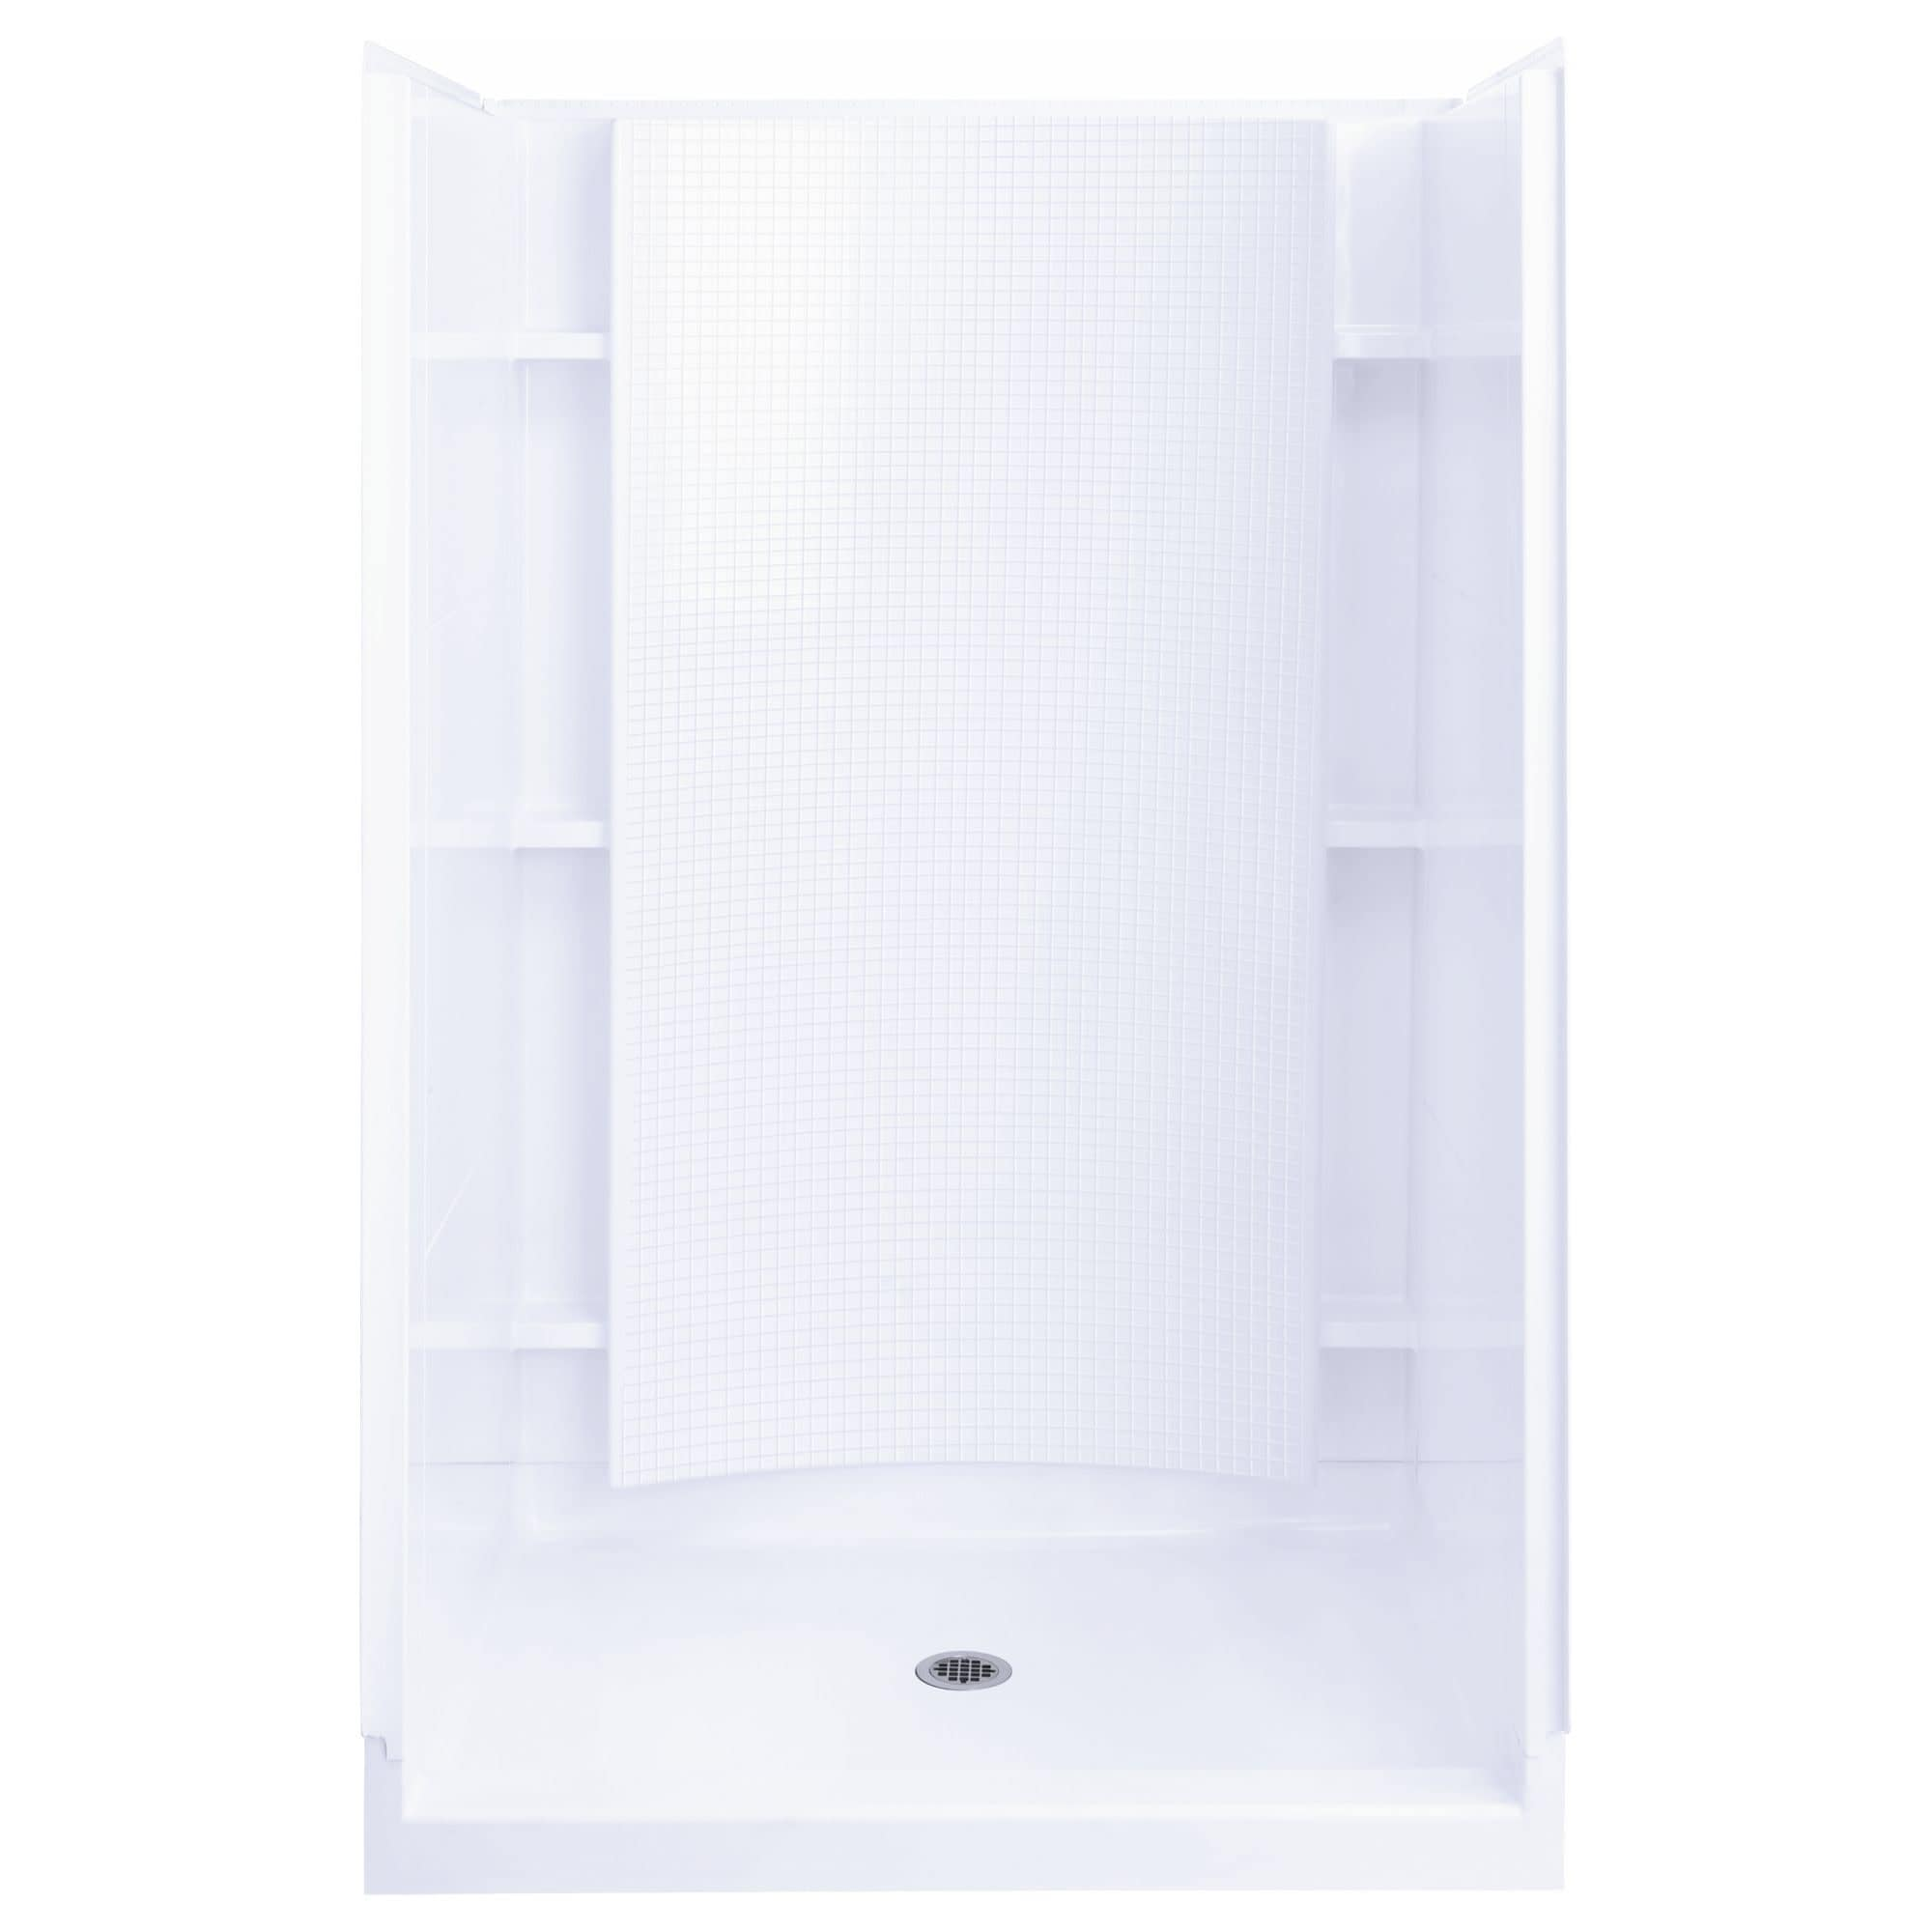 Sterling 72240106  Accord 36 x 37-1/4 x 77 Vikrell Shower with Drain Center and Age-in-Place Backers (White)